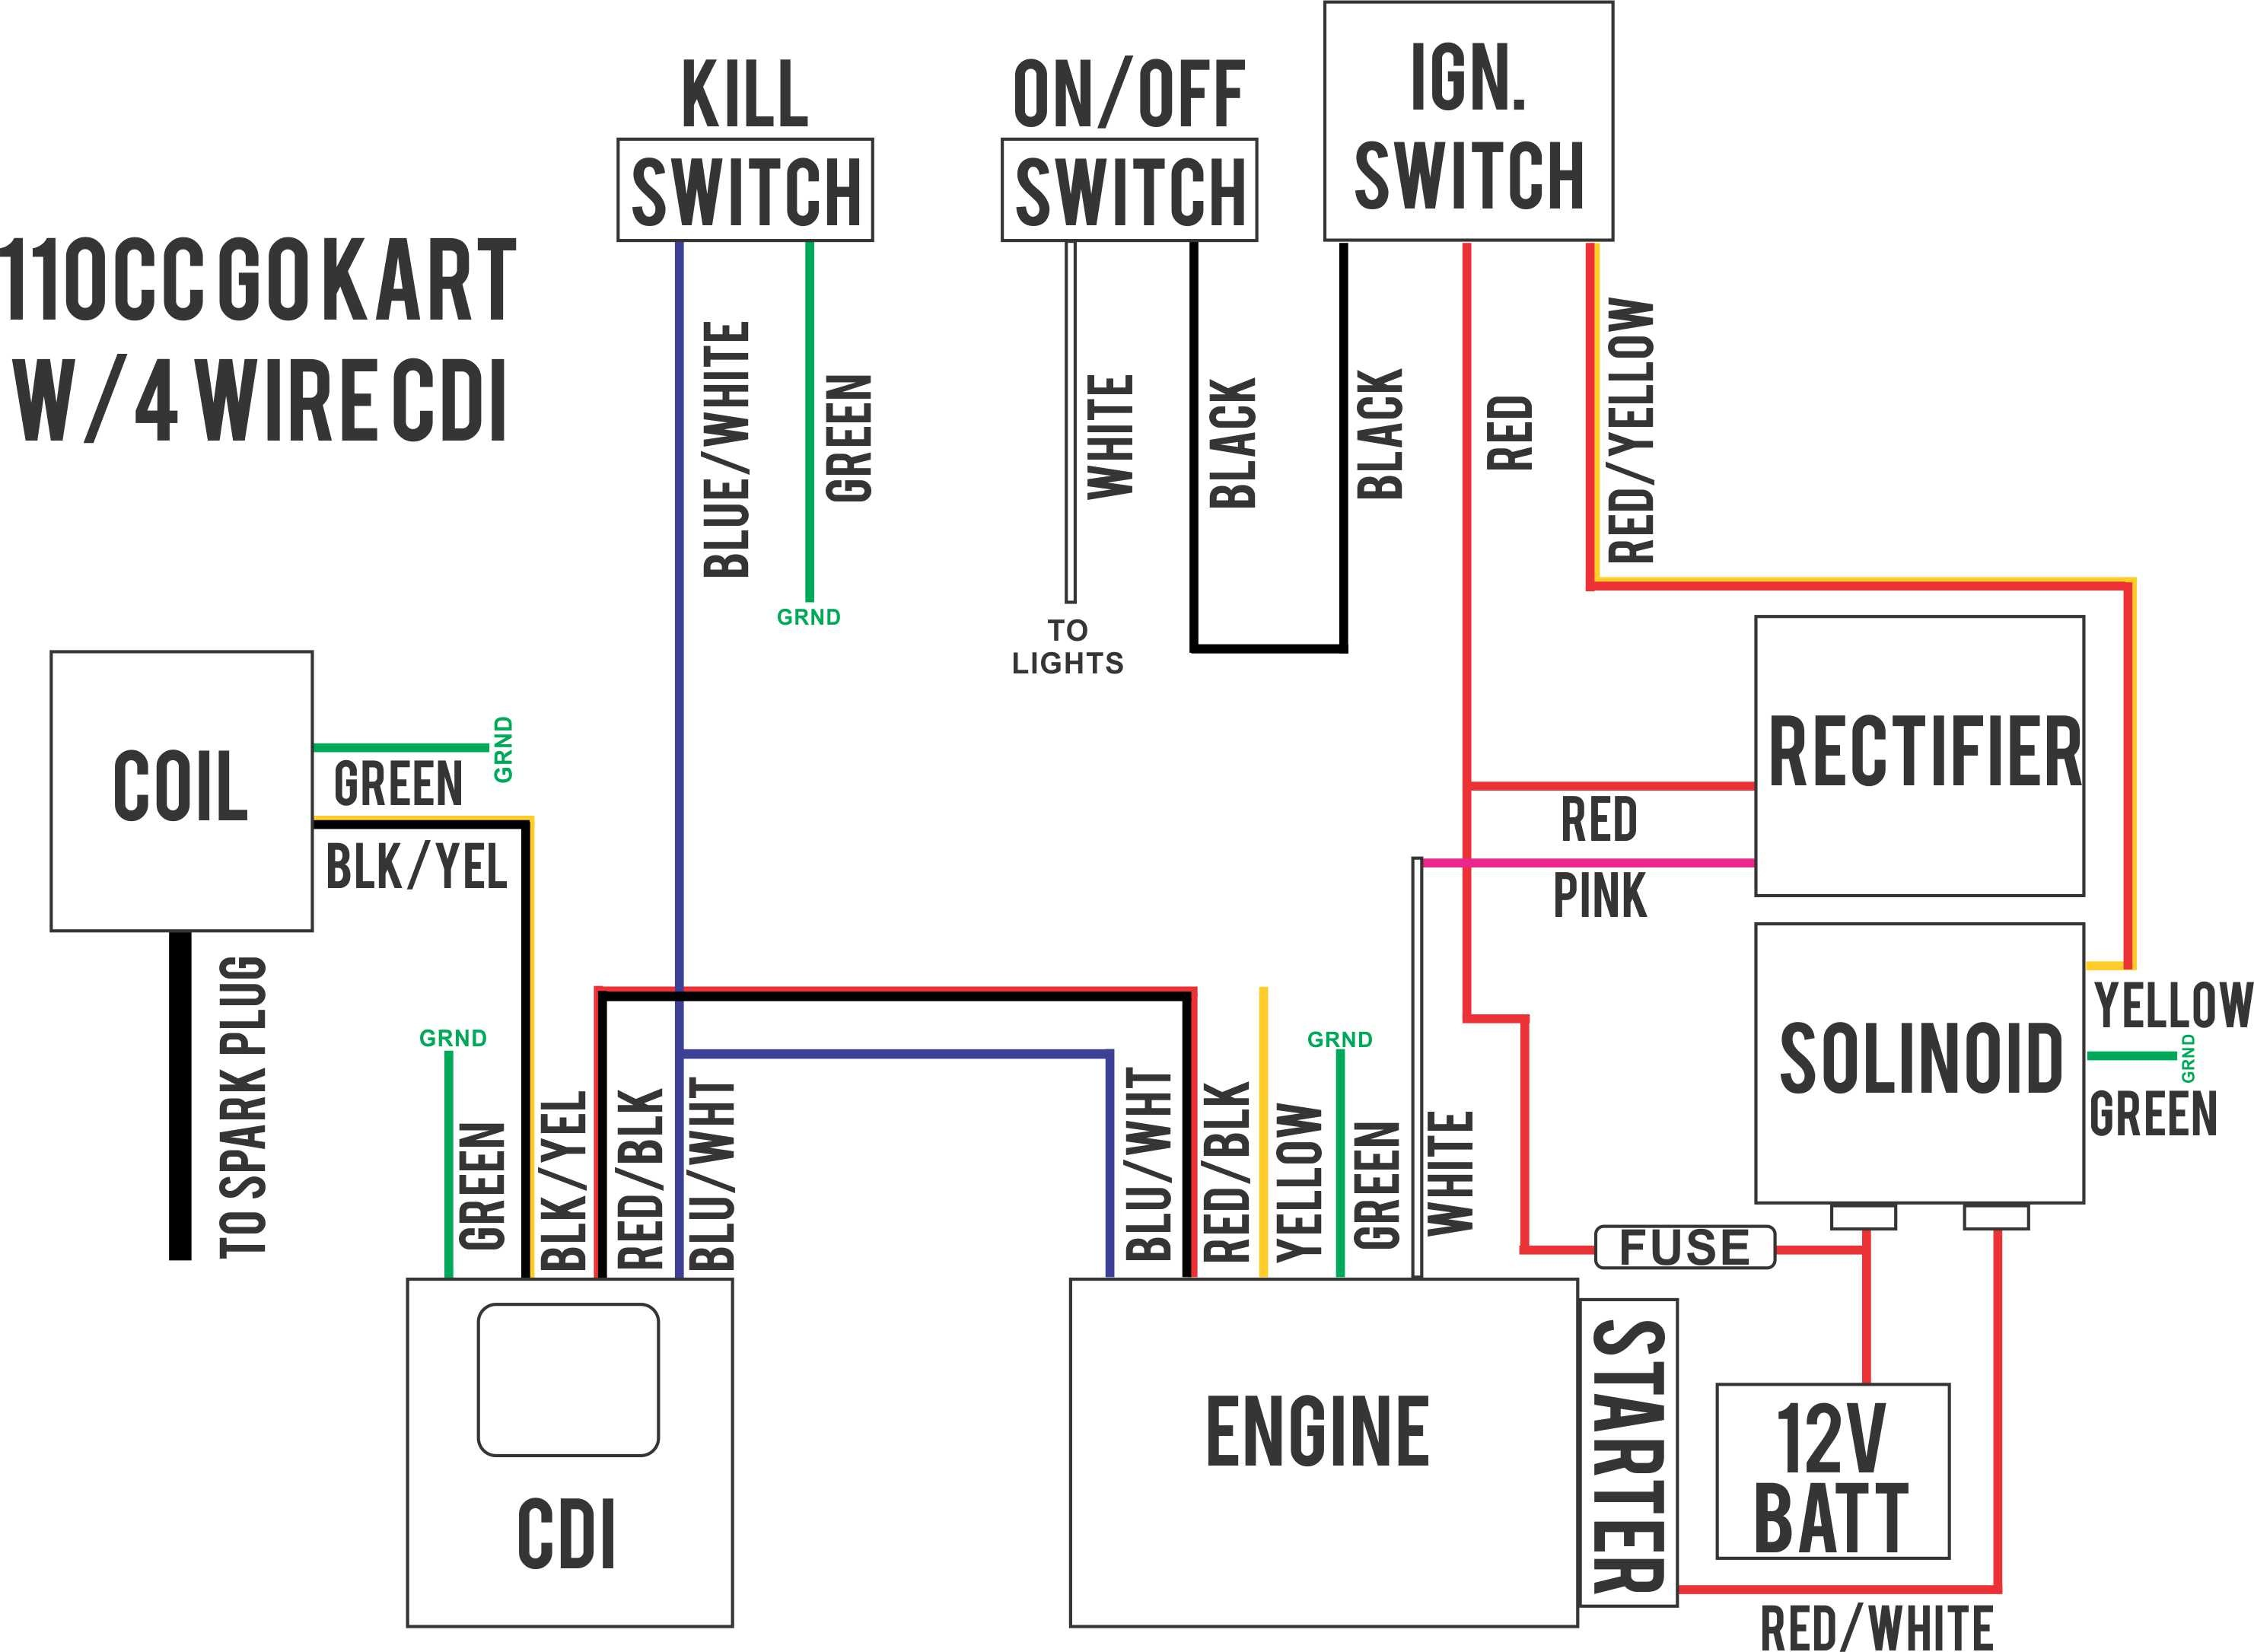 150cc Wiring Diagram - Wiring Diagram Progresif